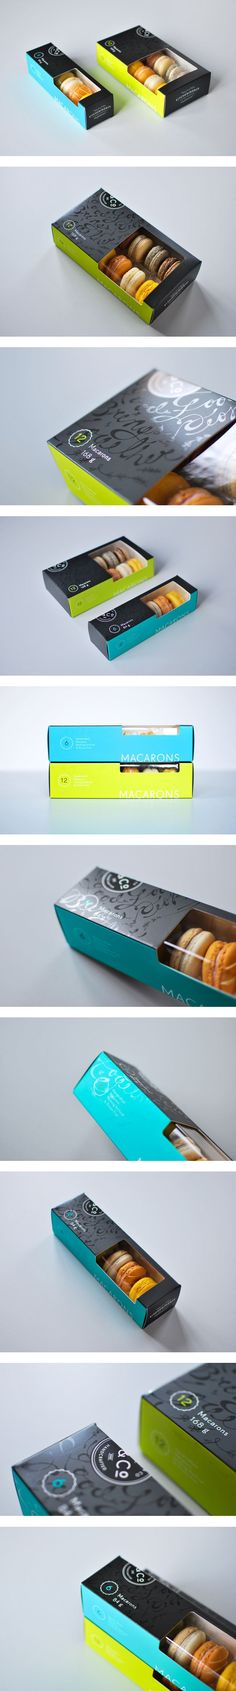 Kitchening & Co. Macaron Packaging